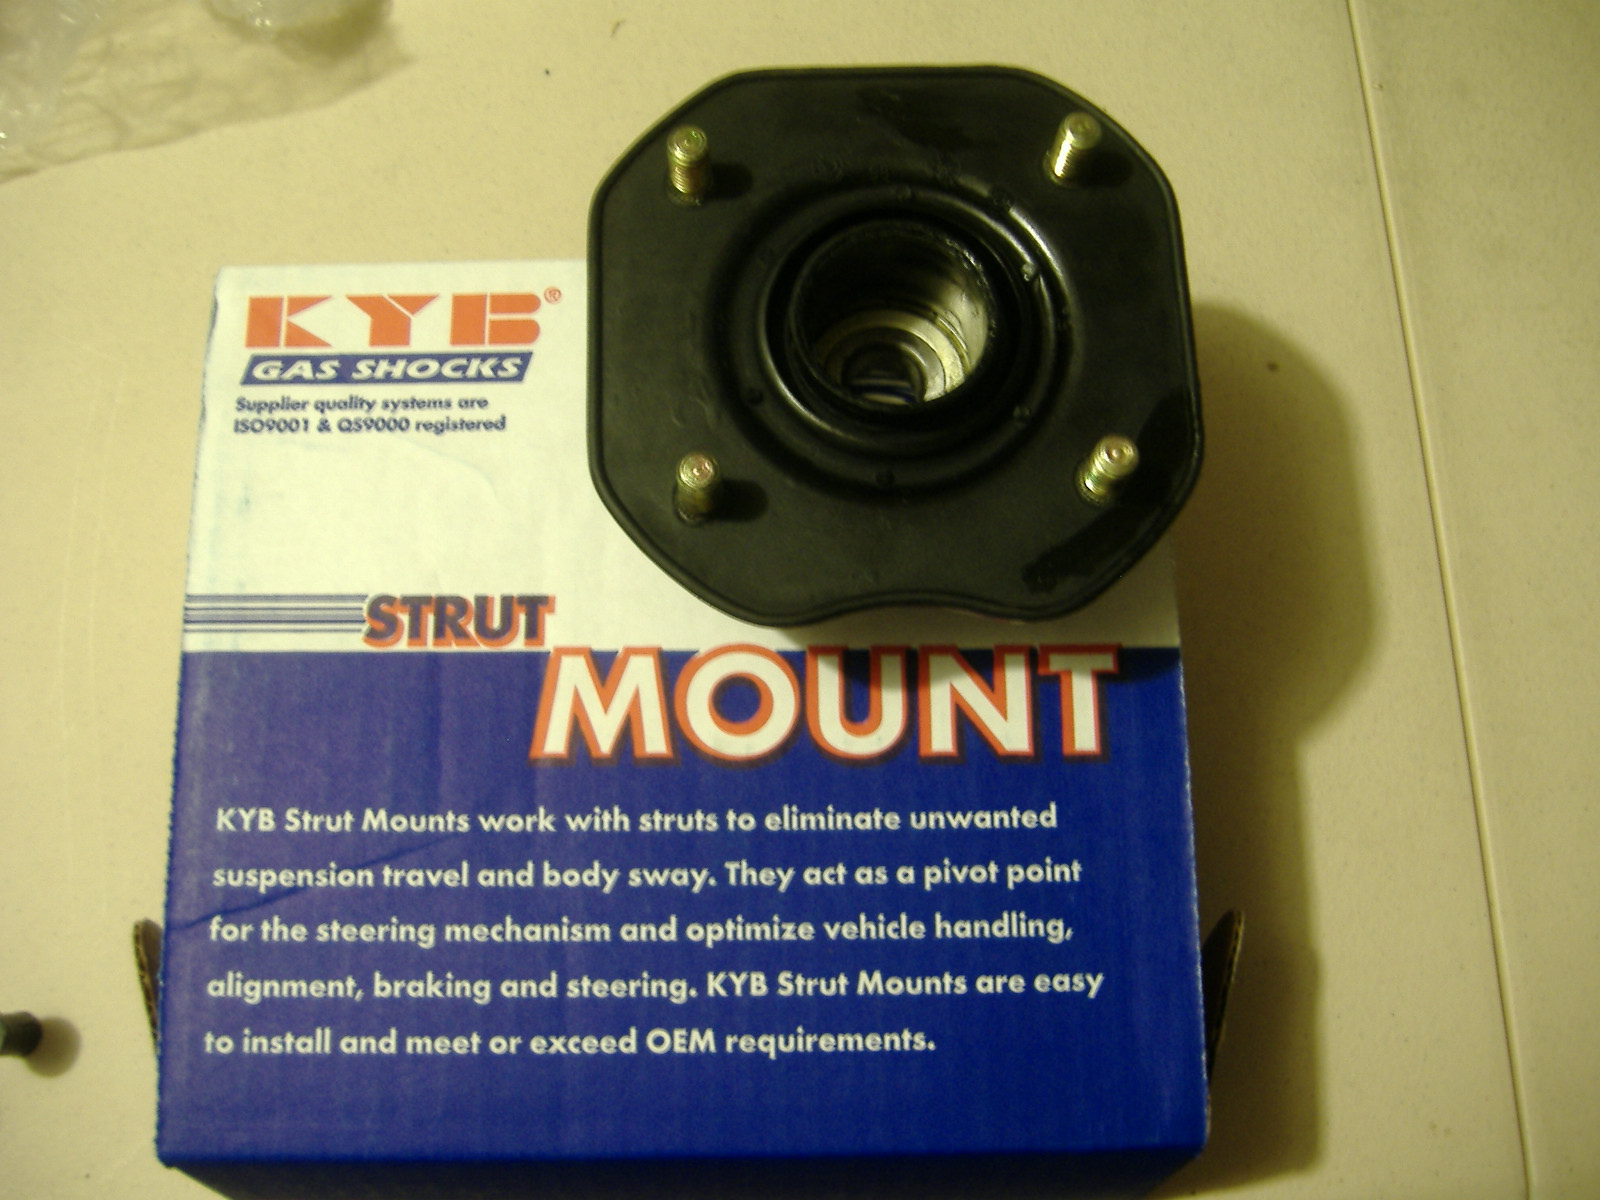 KYB MKII MR2 Front Upper Suspension Mount | Twos R Us